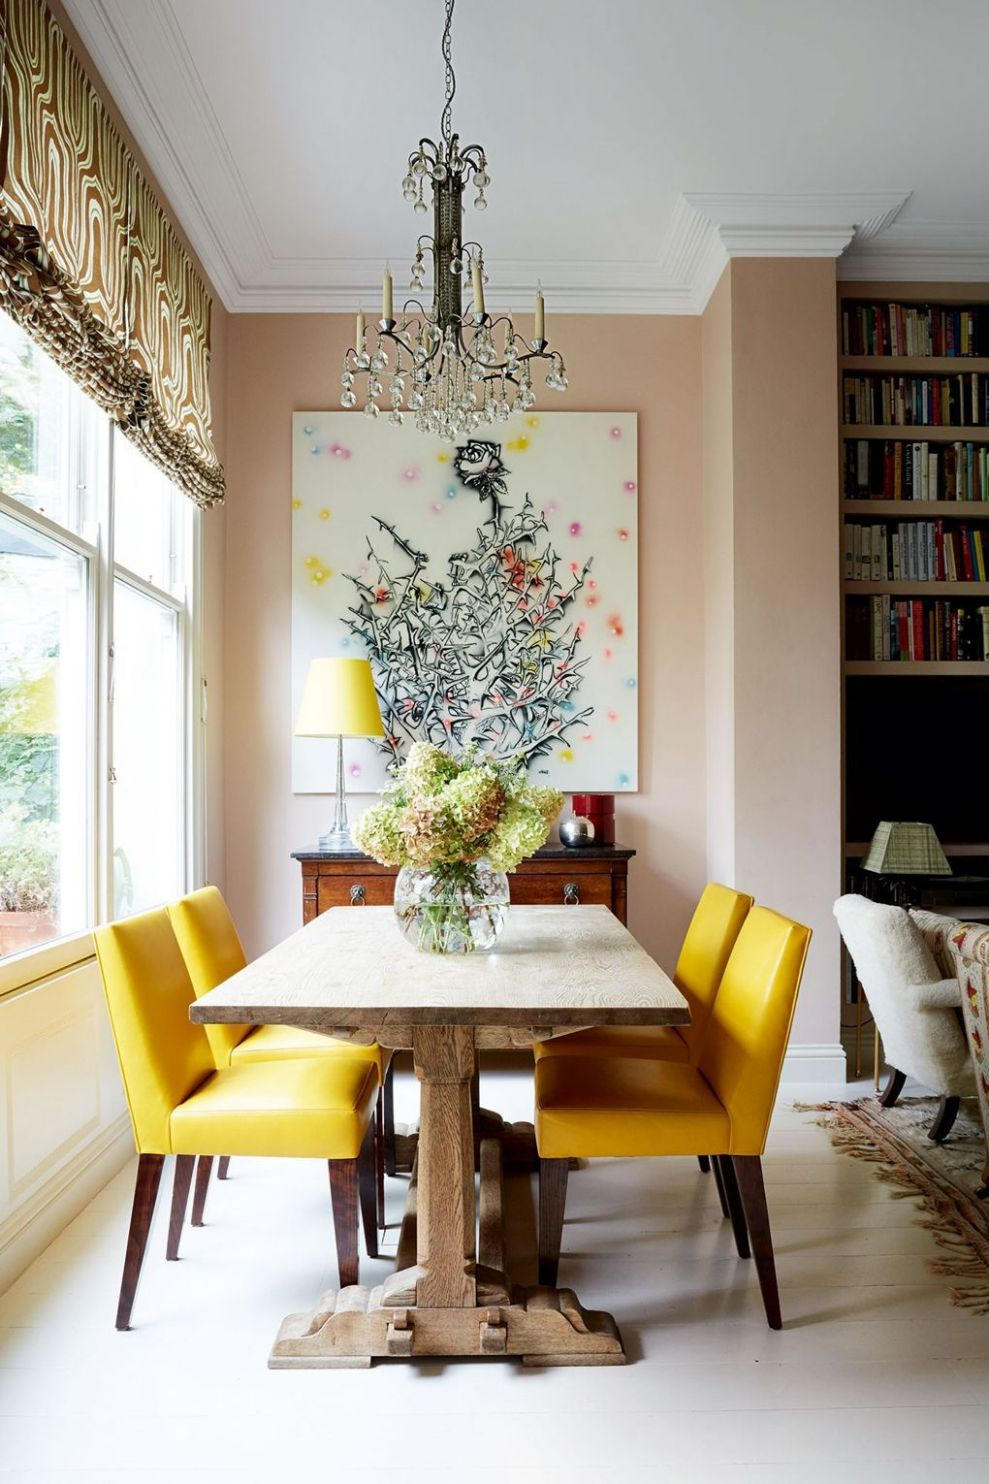 Small dining room ideas   Yellow dining room, Dining room small